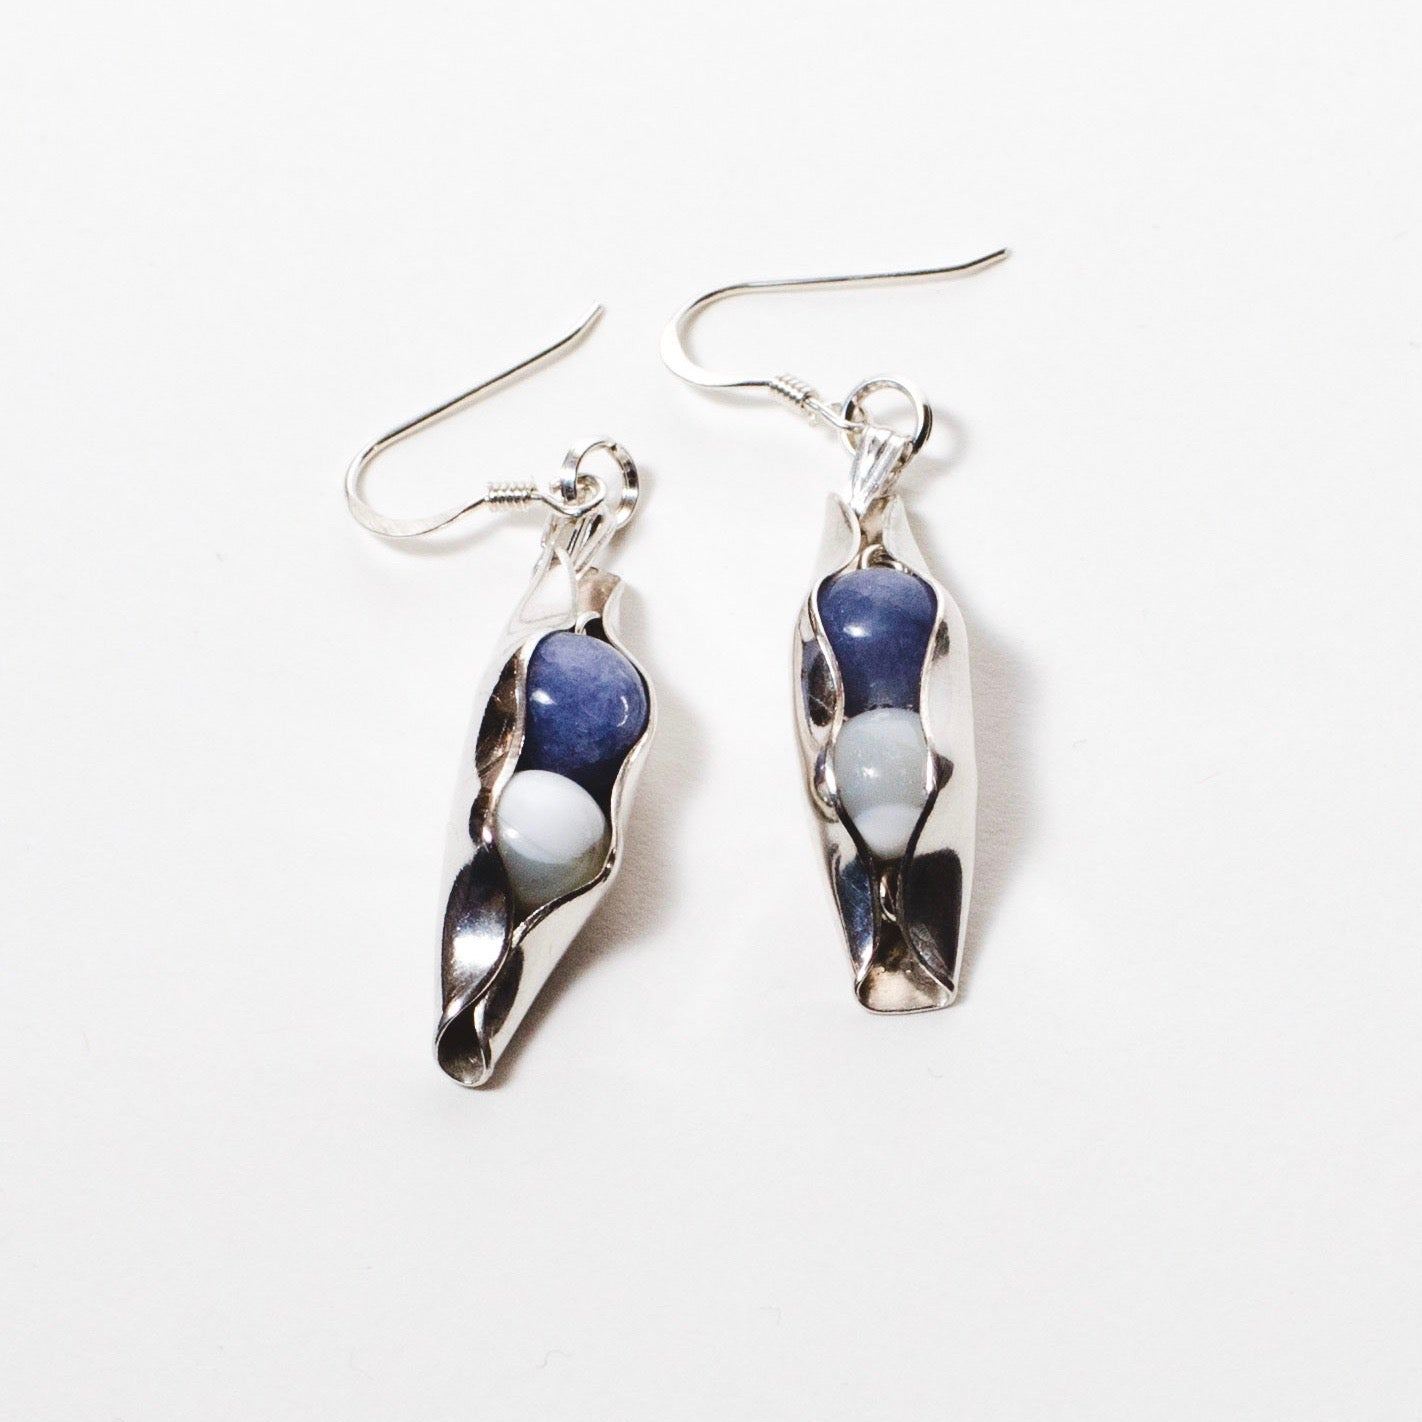 Two Peas In A Pod Earrings - Choose your birthstone combination